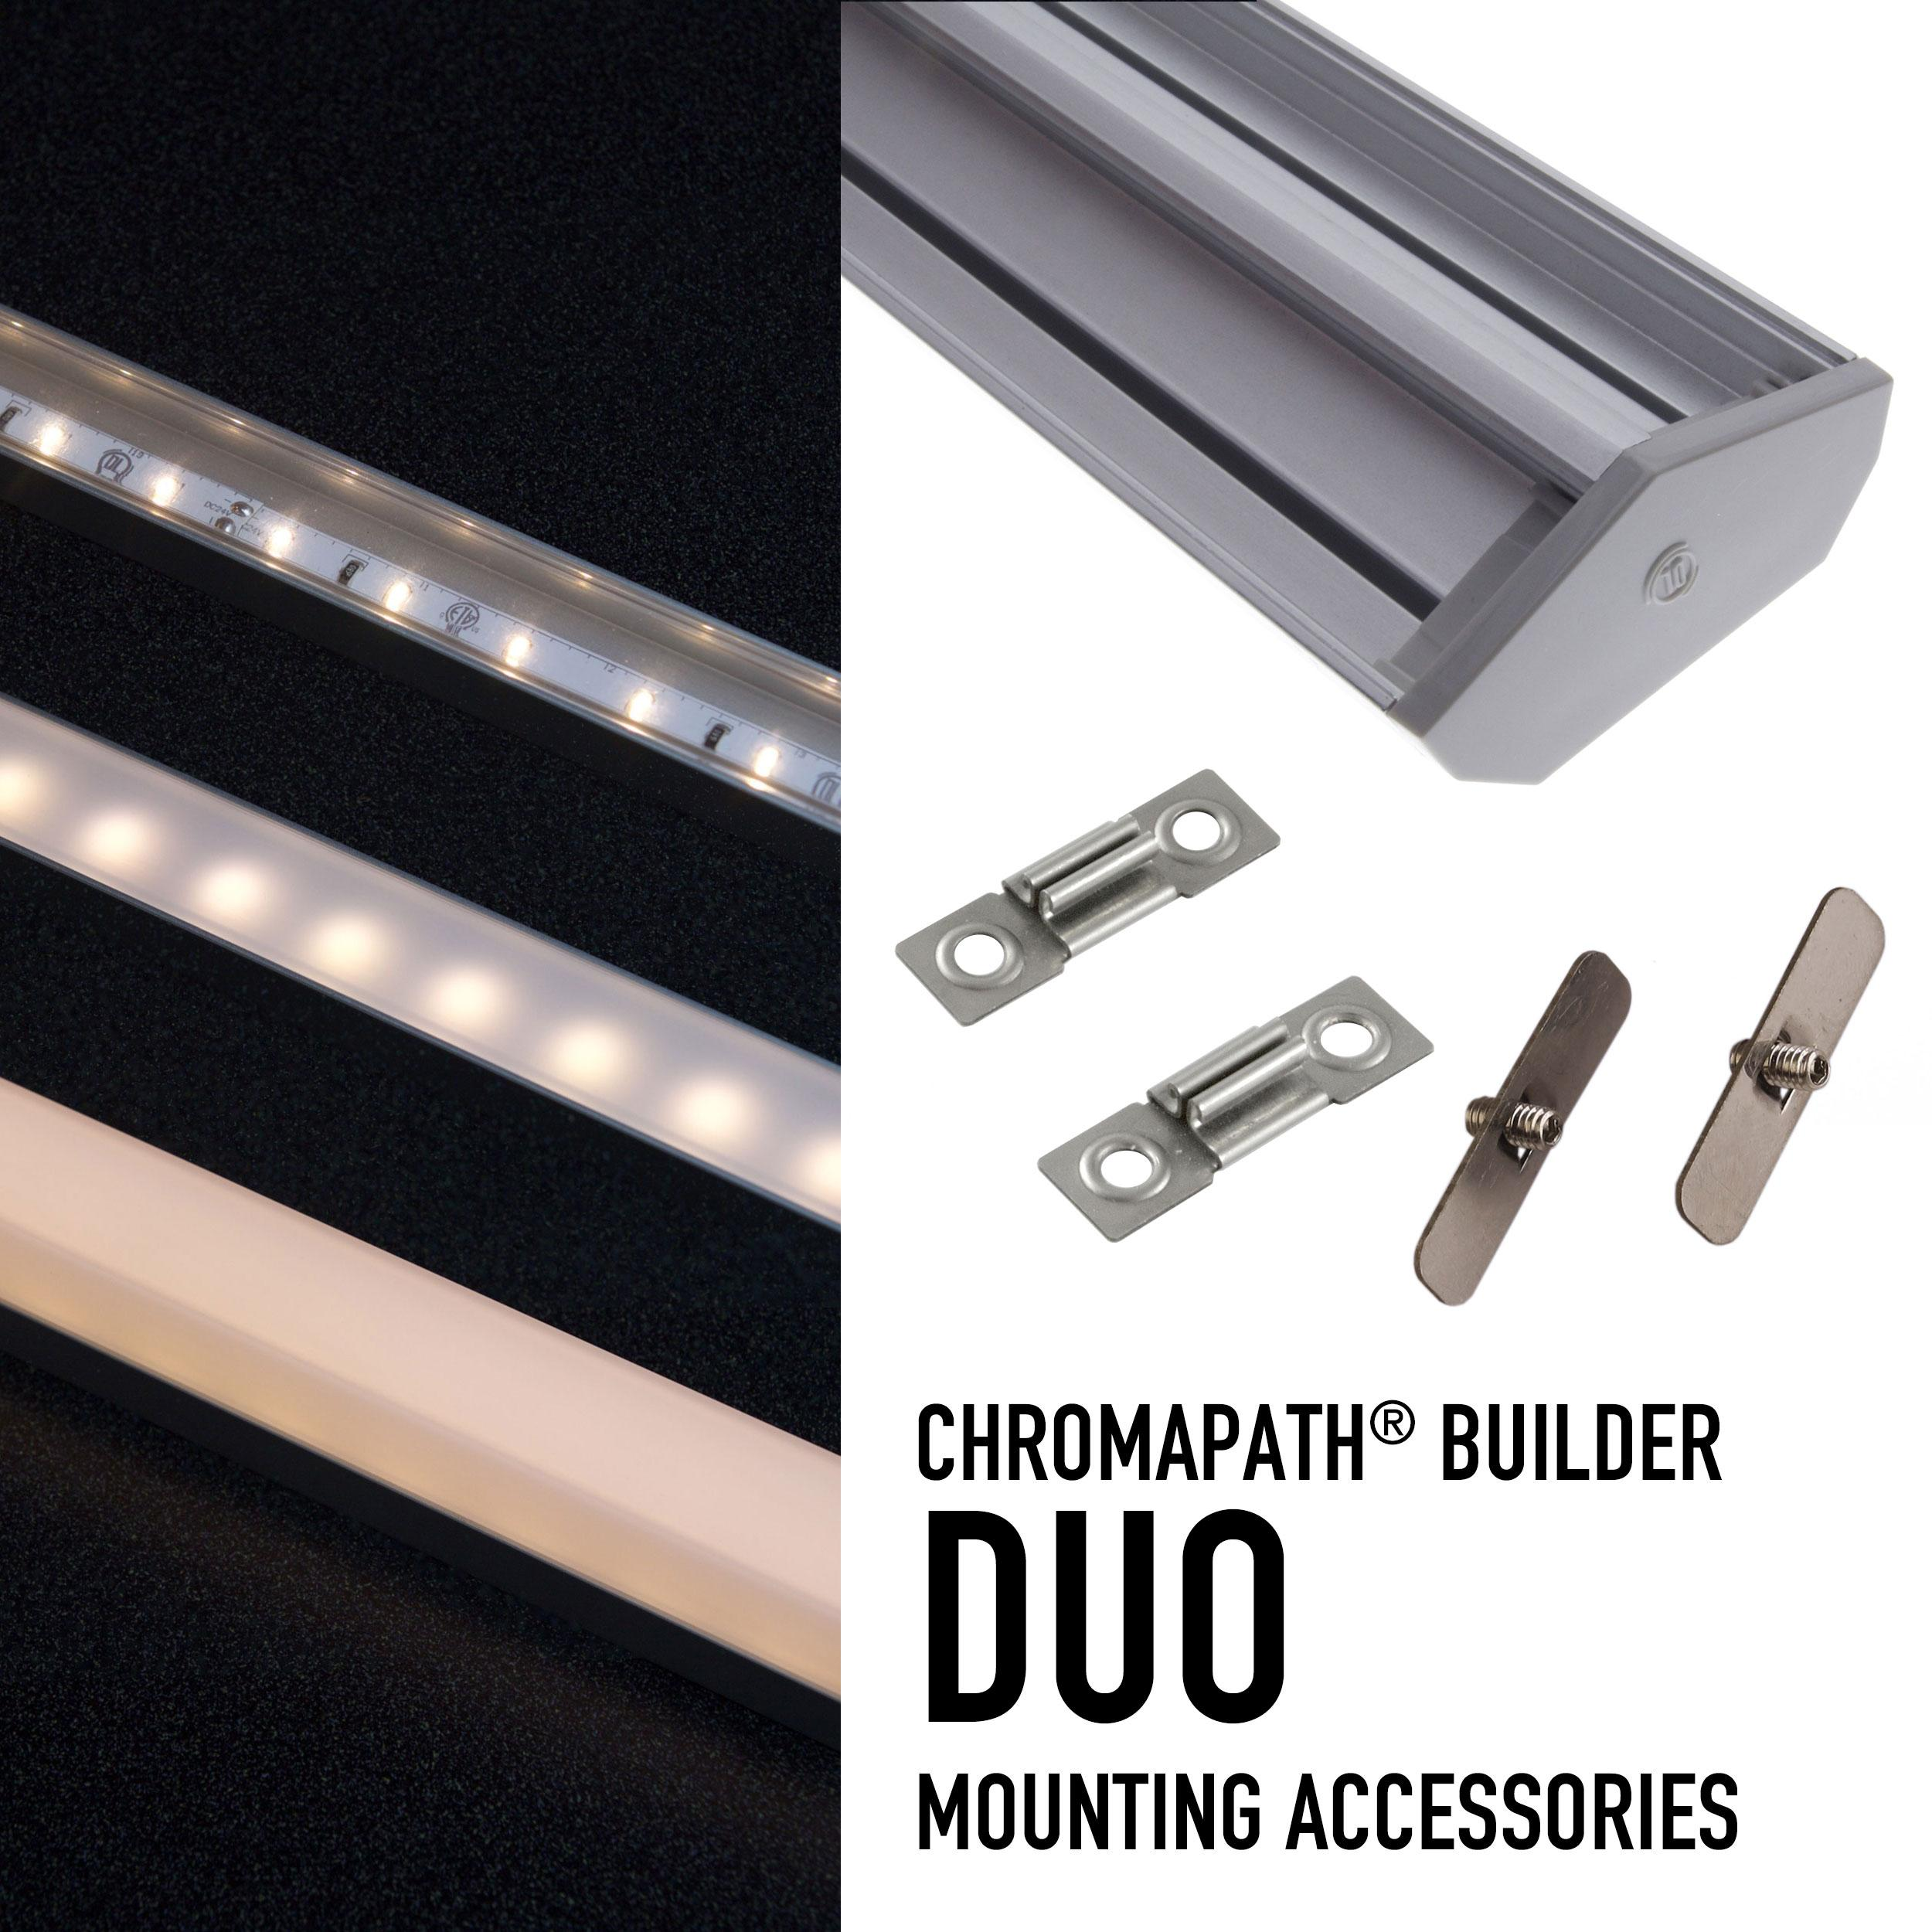 CHROMAPATH® Builder Channel Accessories - DUO